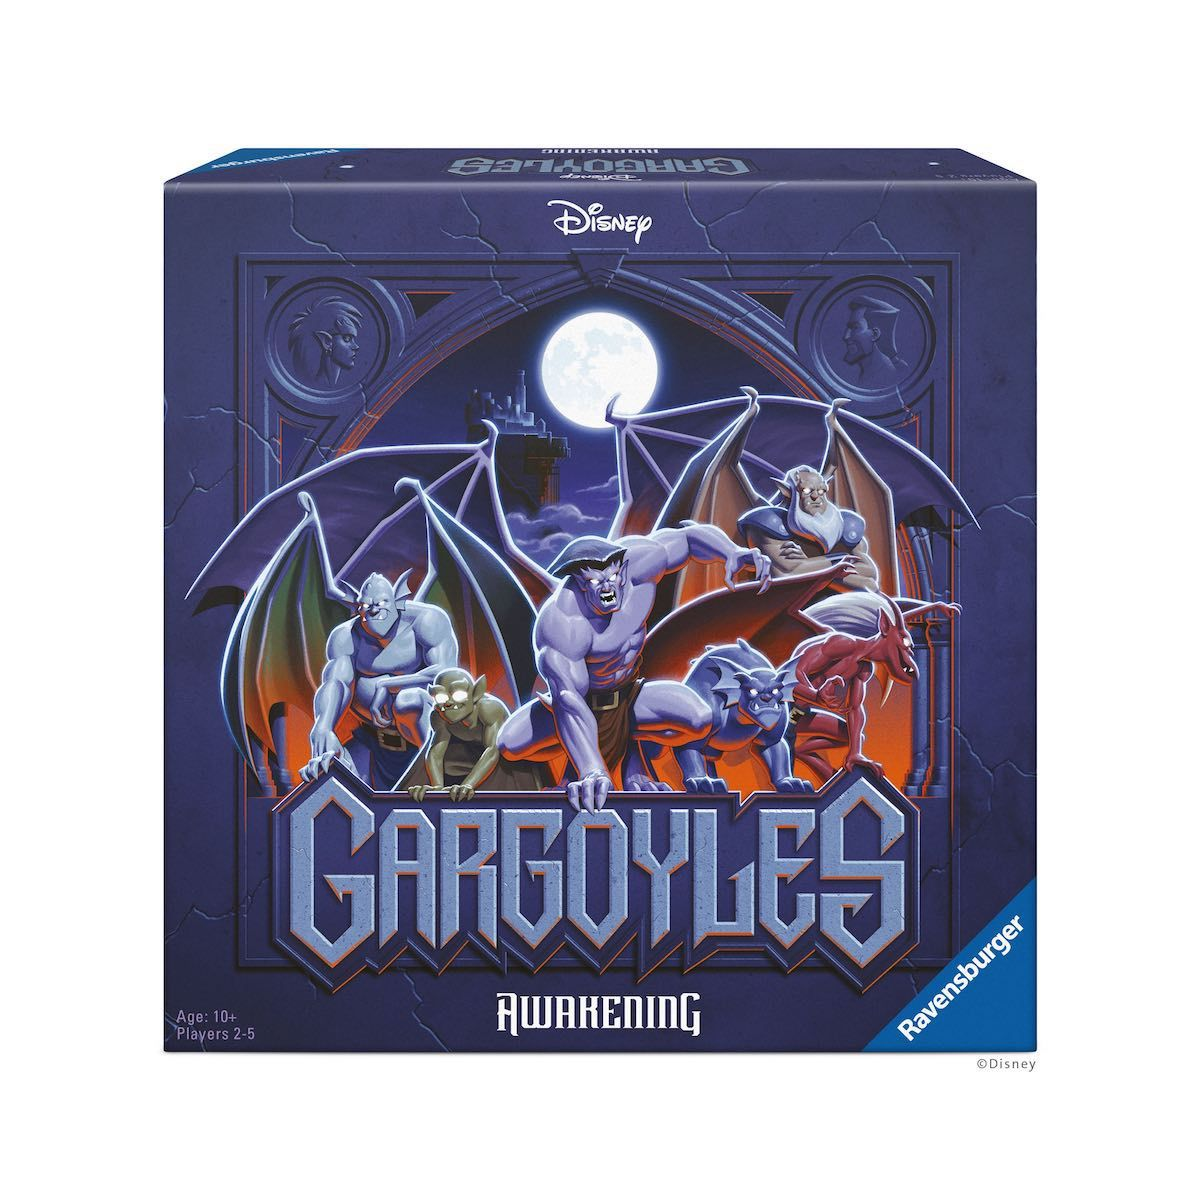 Disney's Gargoyles animated series is back as a board game